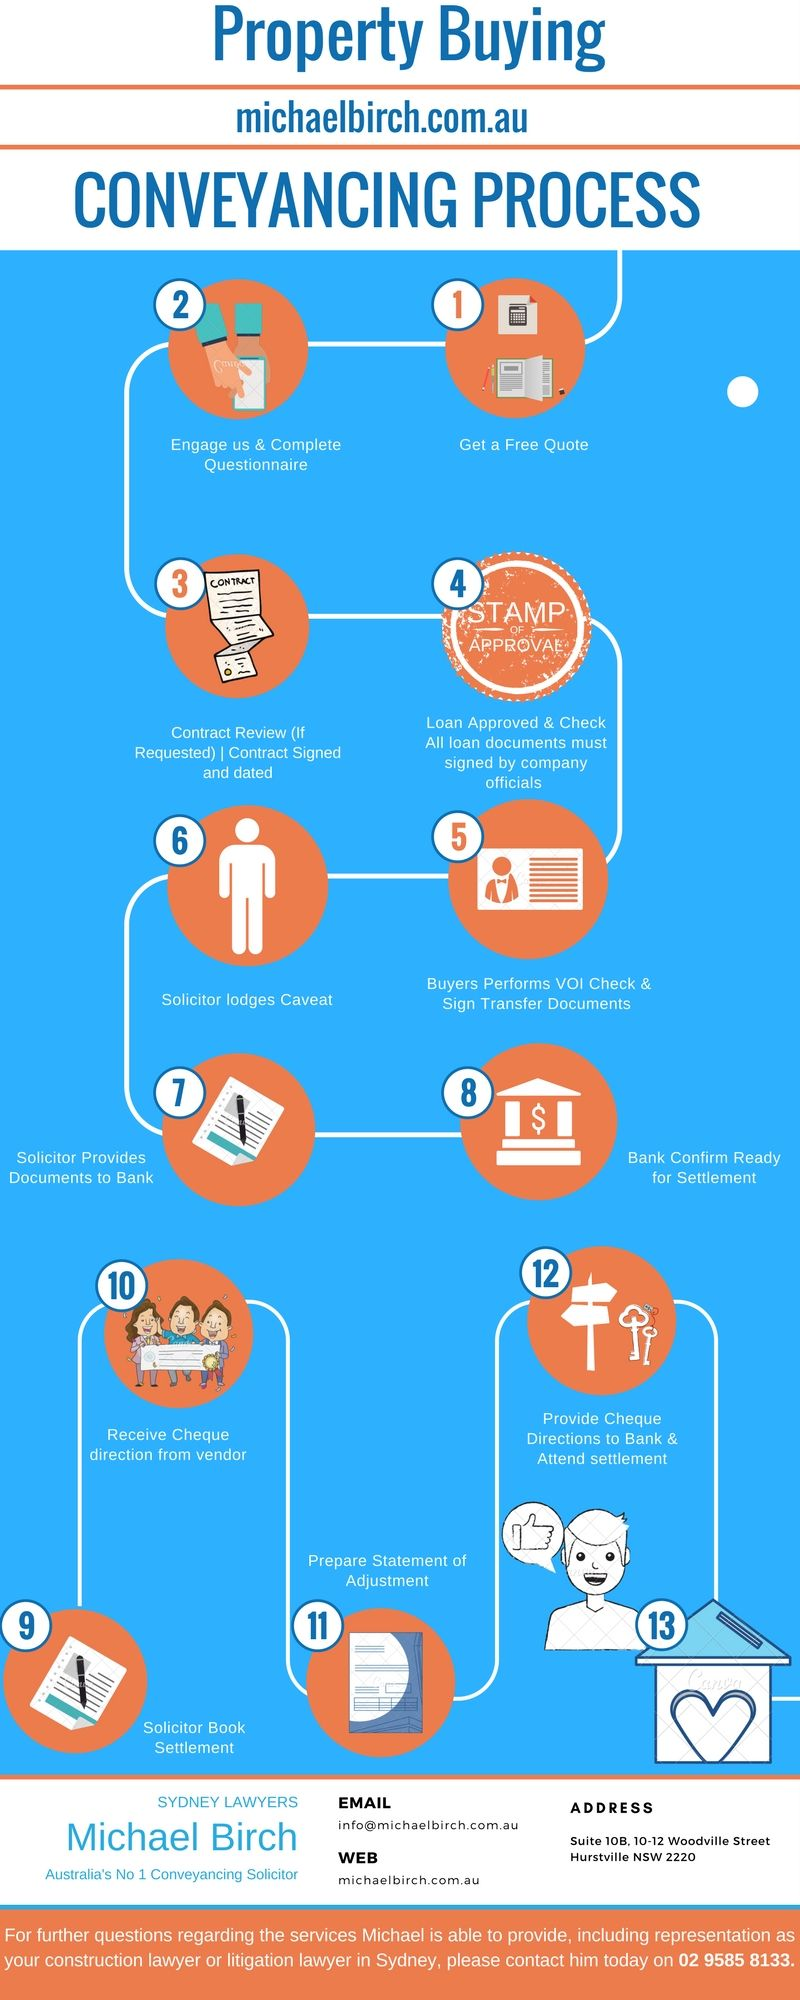 Conveyancing Process Of Buying A Property Info Graphic Https Goo Gl Ctepu6 Buying Property Building Construction Solicitor